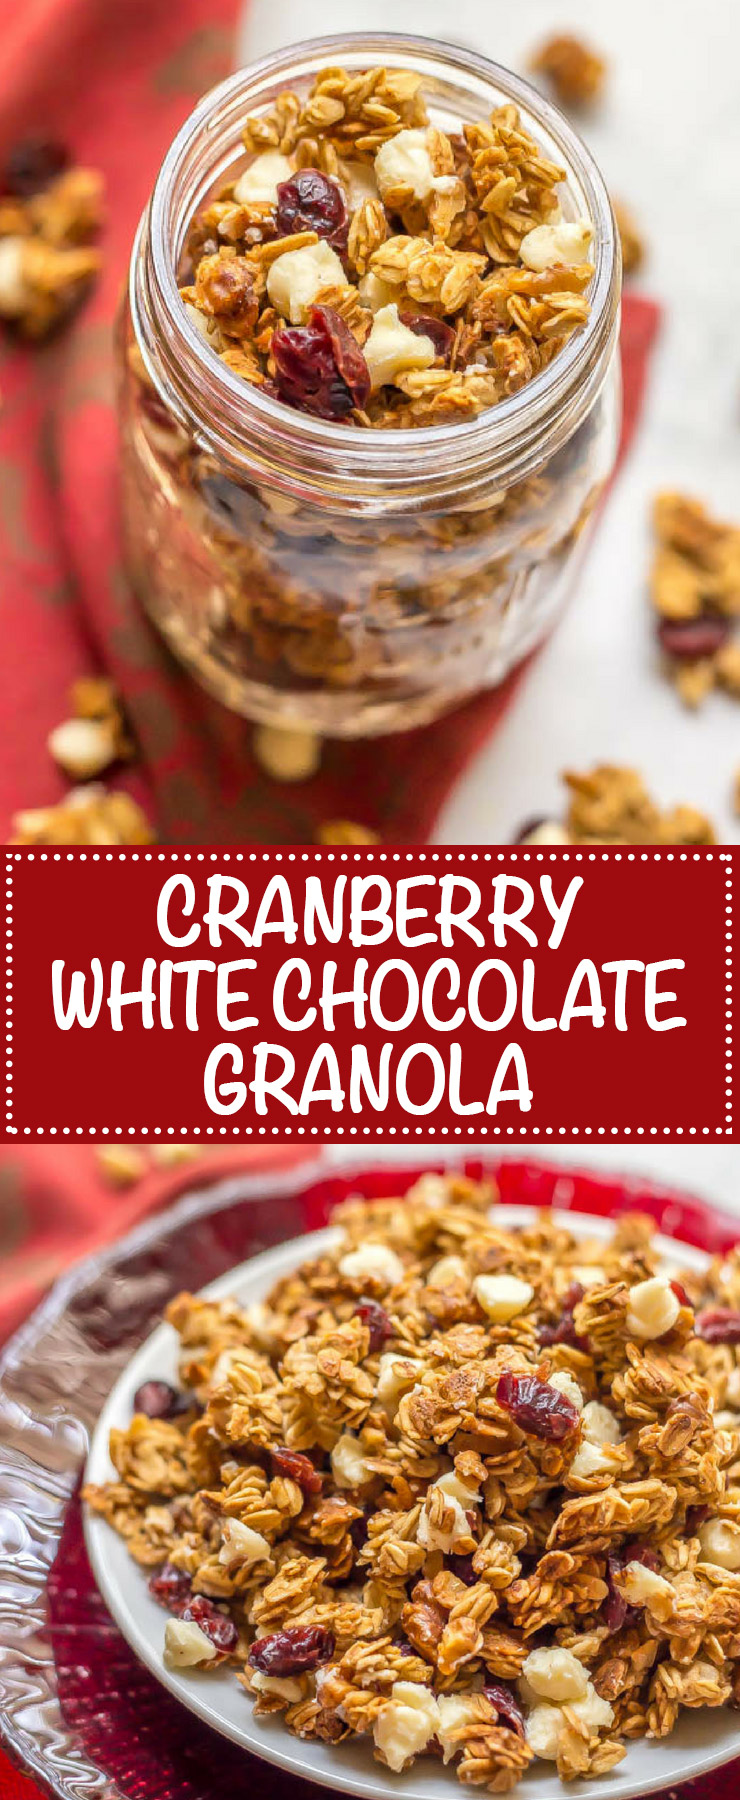 Cranberry white chocolate granola is an easy, delicious, and festive baked granola that's perfect for healthy holiday breakfasts and snacking! | www.familyfoodonthetable.com